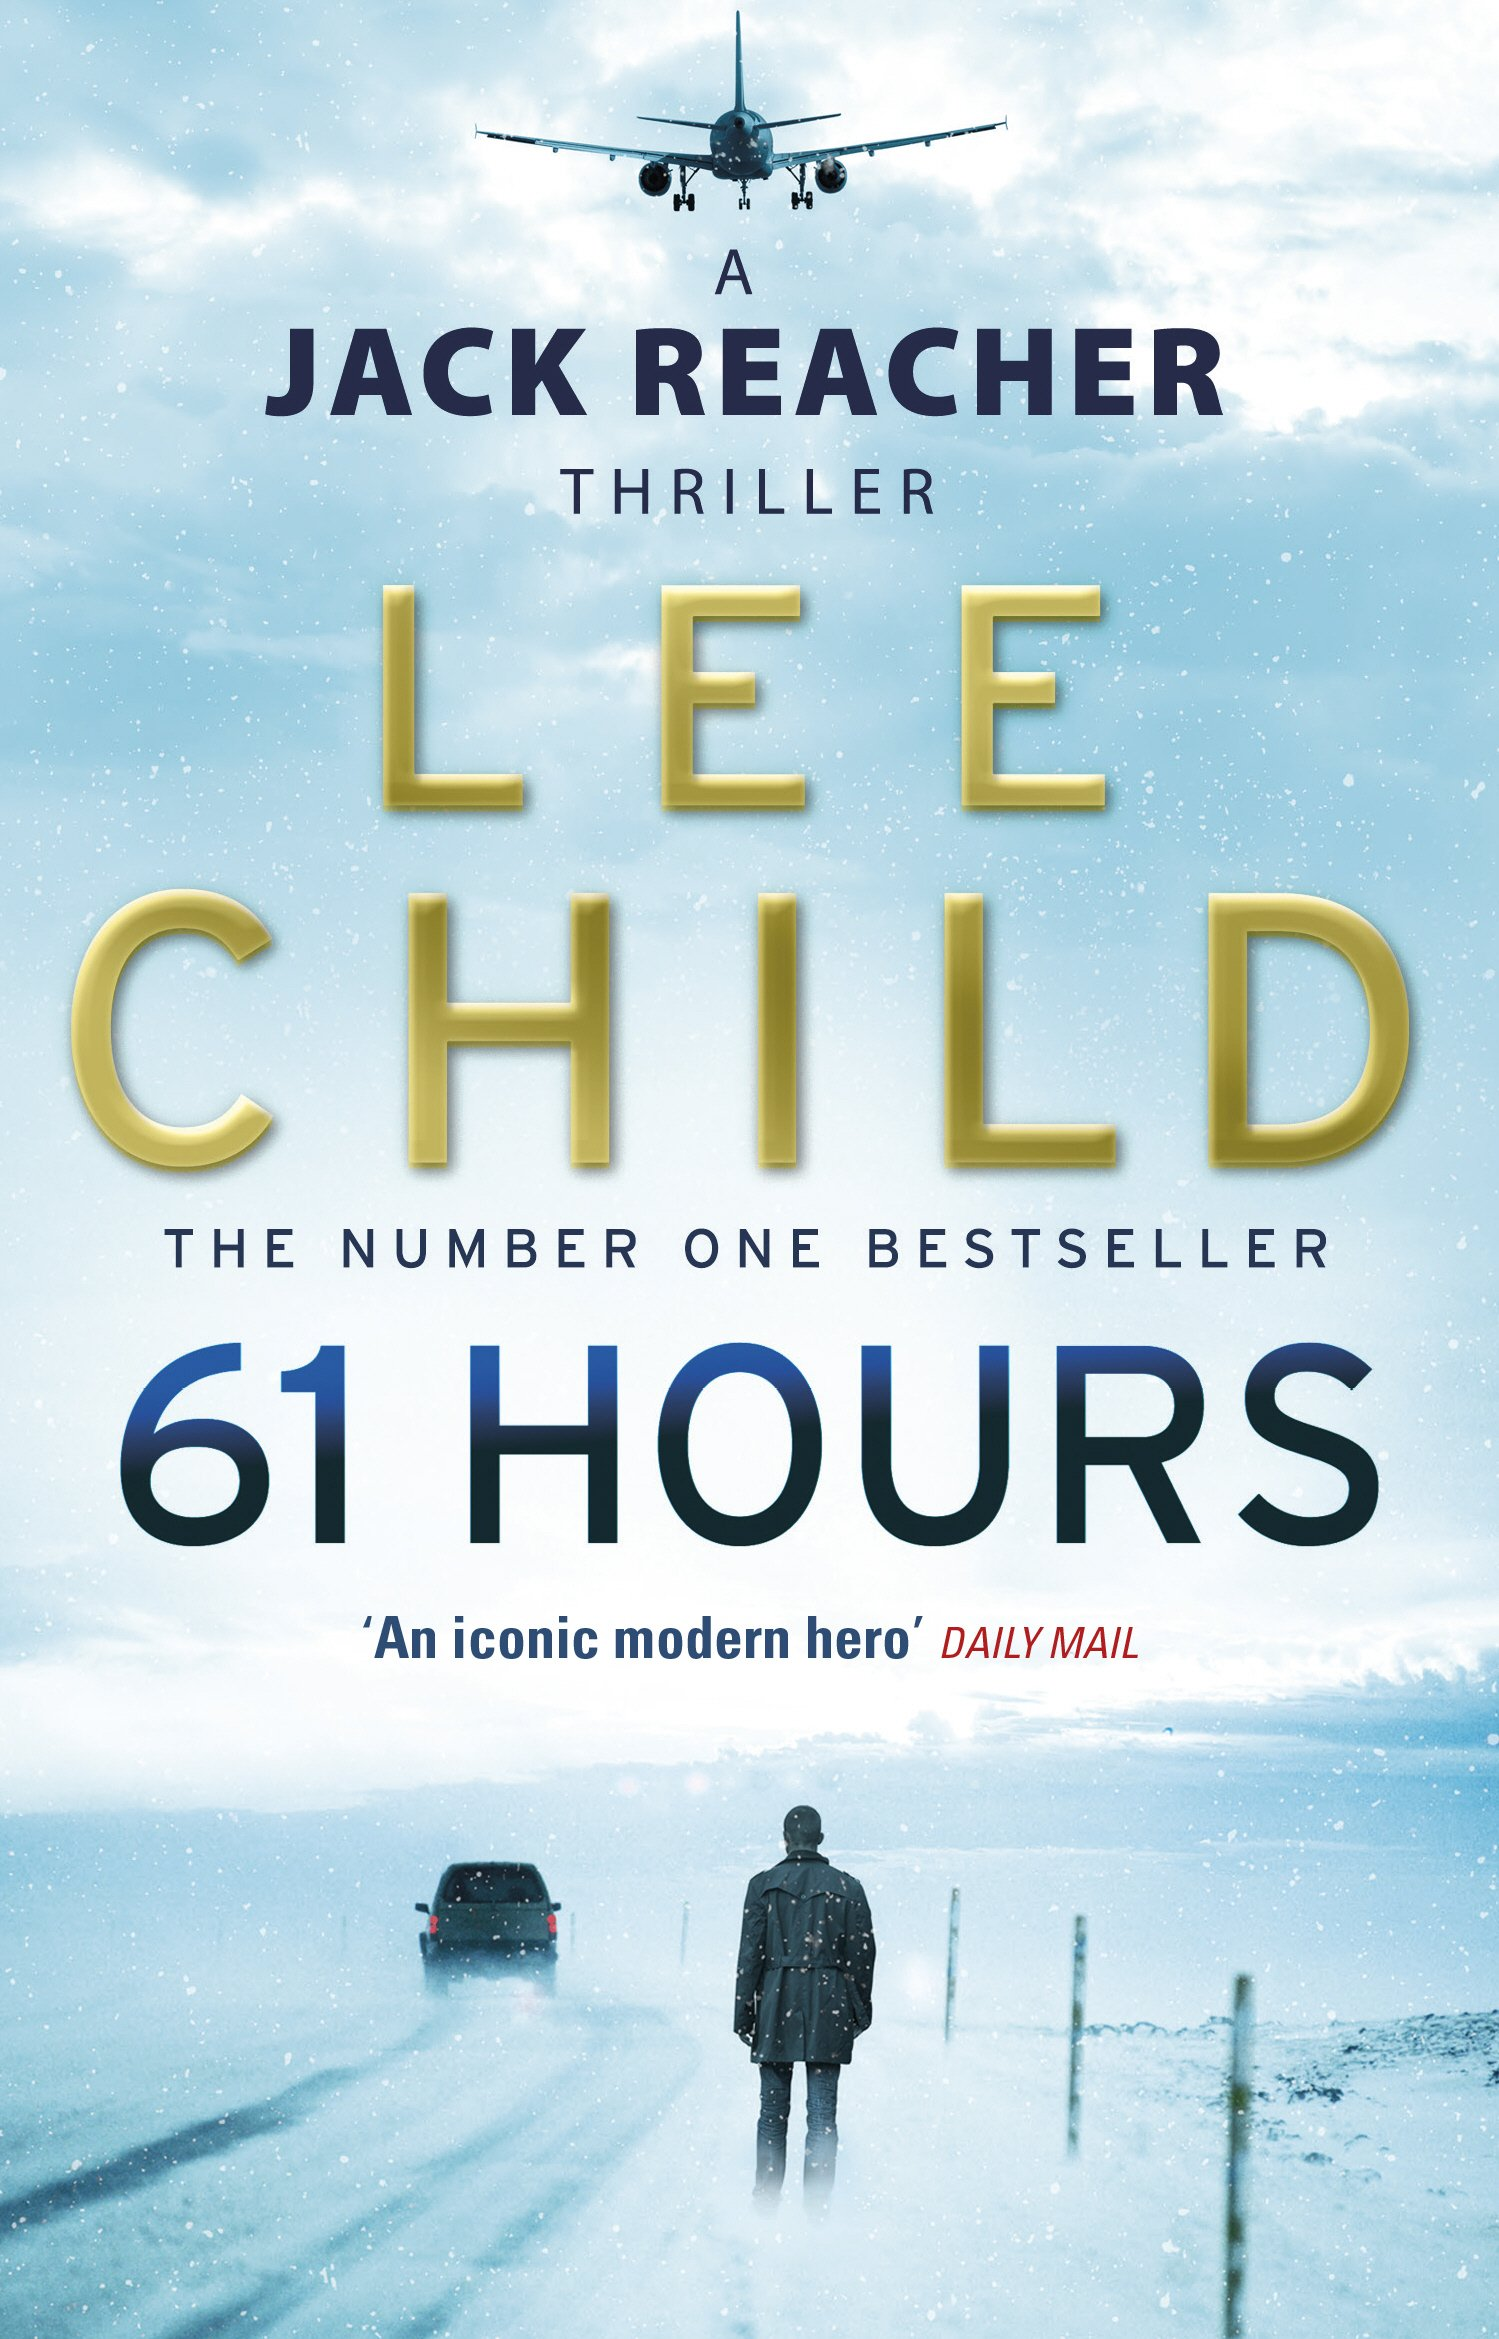 The novelist Lee Child knows just how to ballast wish fulfillment with earthbound details.